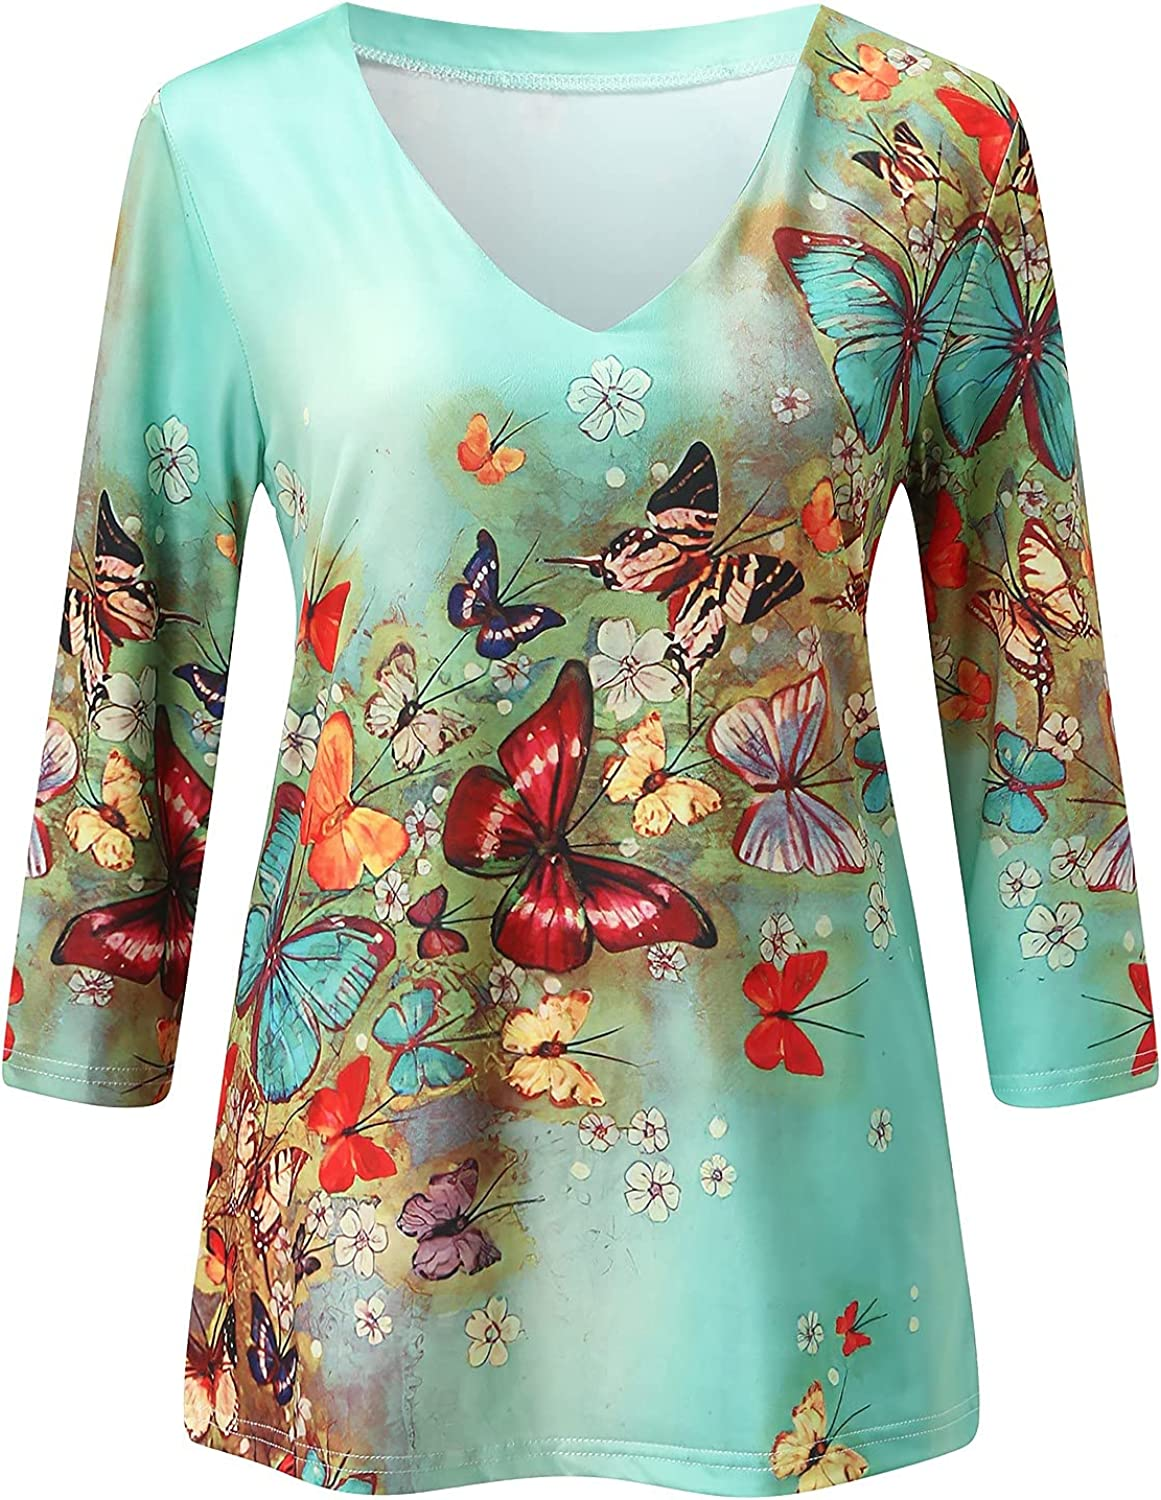 Pandaie Floral Print Shirts for Women Loose Neck Tees V Rare F Casual Nashville-Davidson Mall